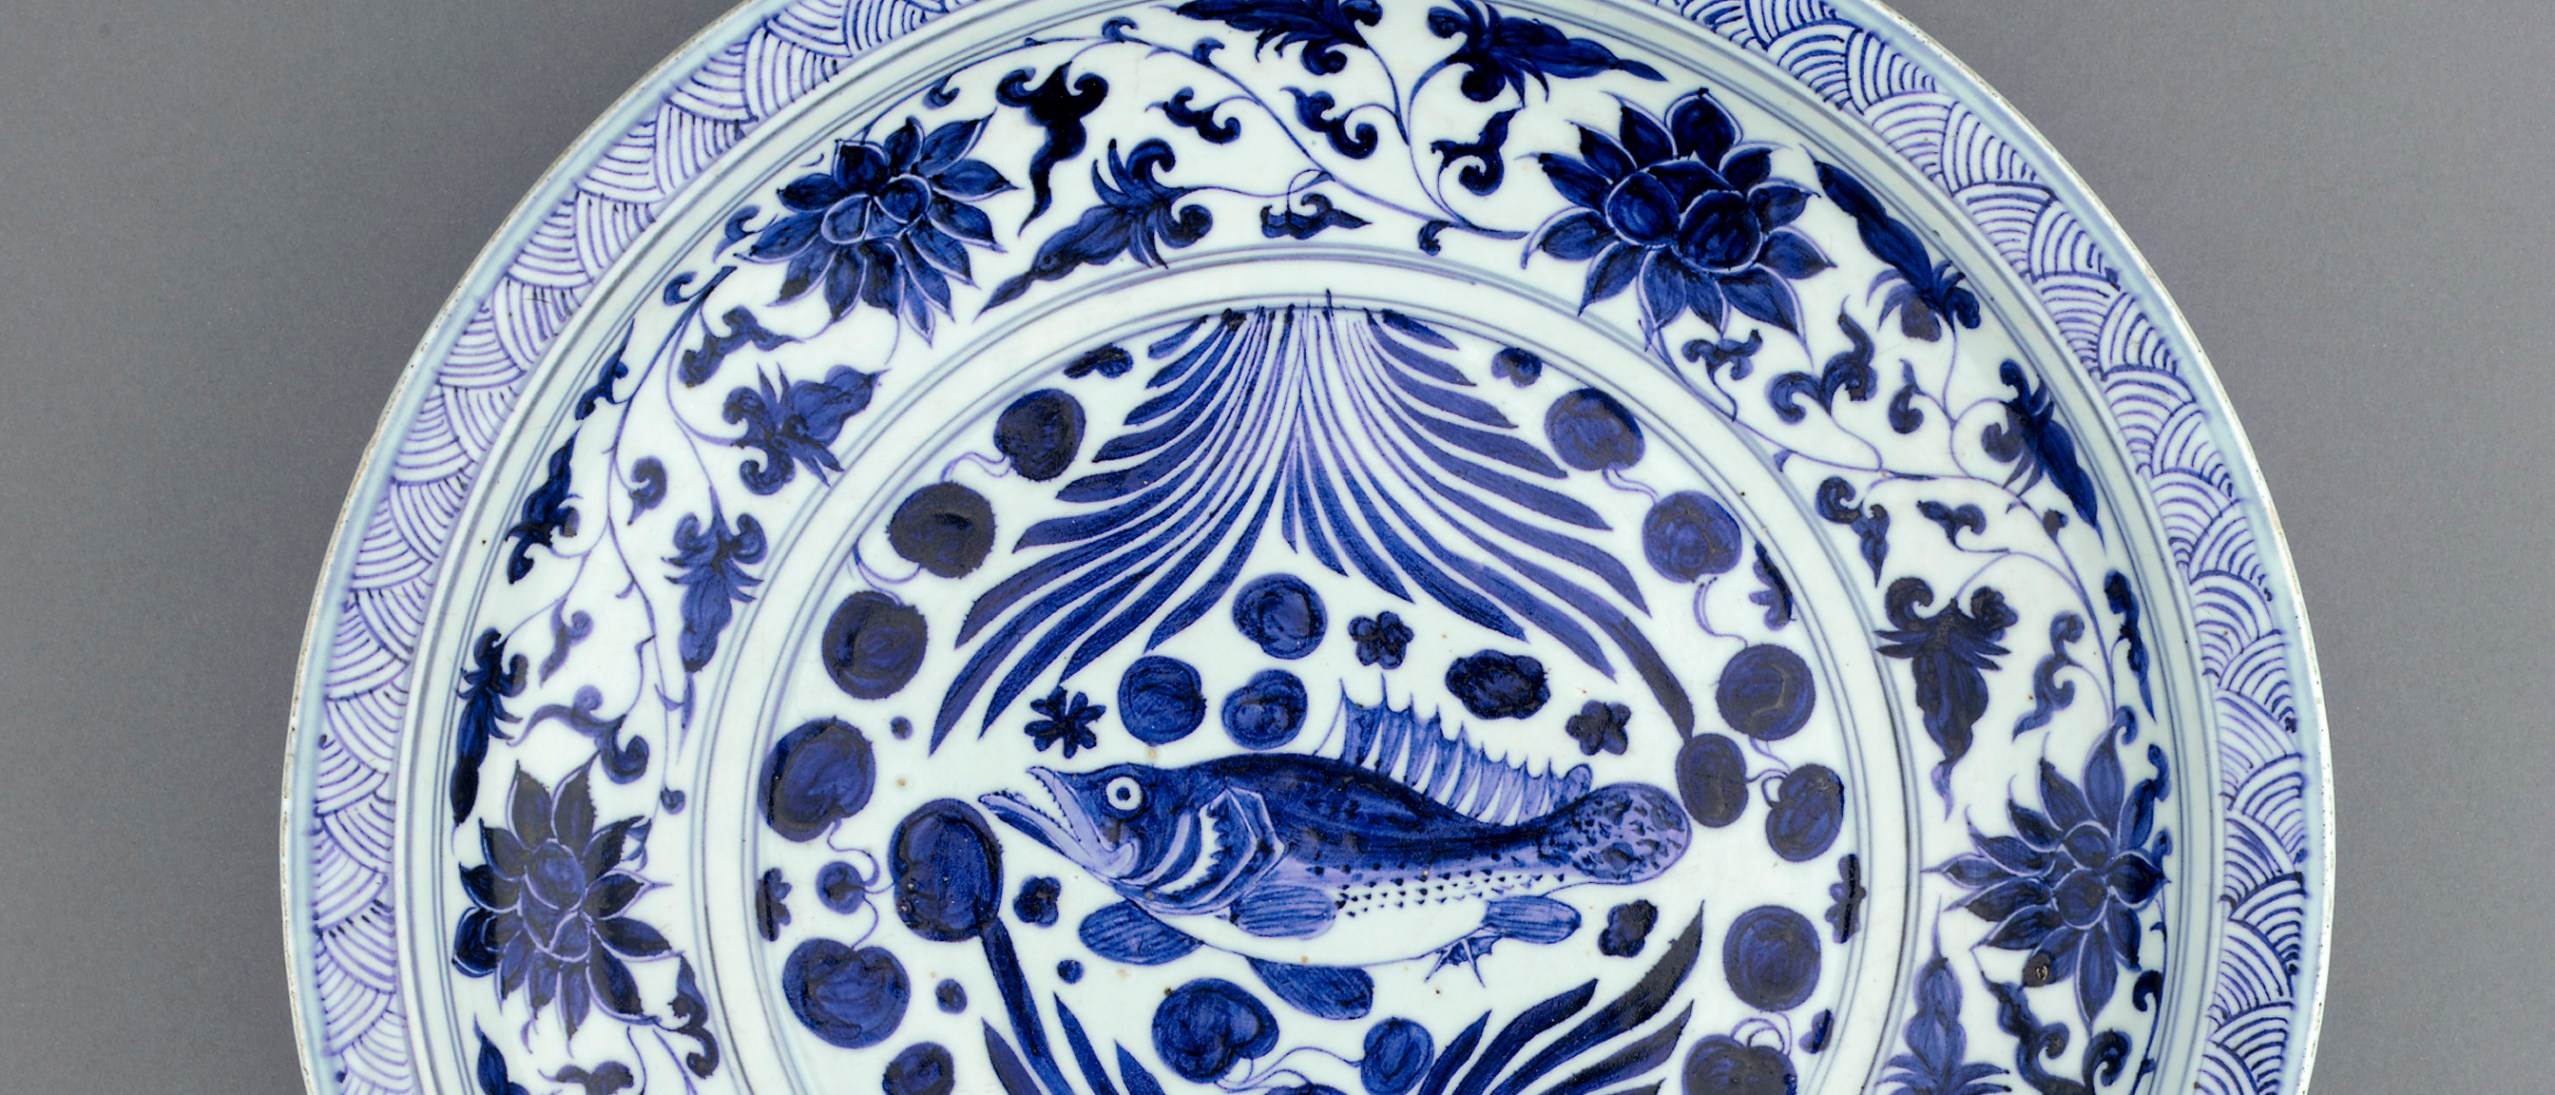 Detail image, Dish with design of mandarin fish; Yuan dynasty, mid 14th century; Porcelain with cobalt pigment under colorless glaze; Freer Gallery of Art, F1971.3